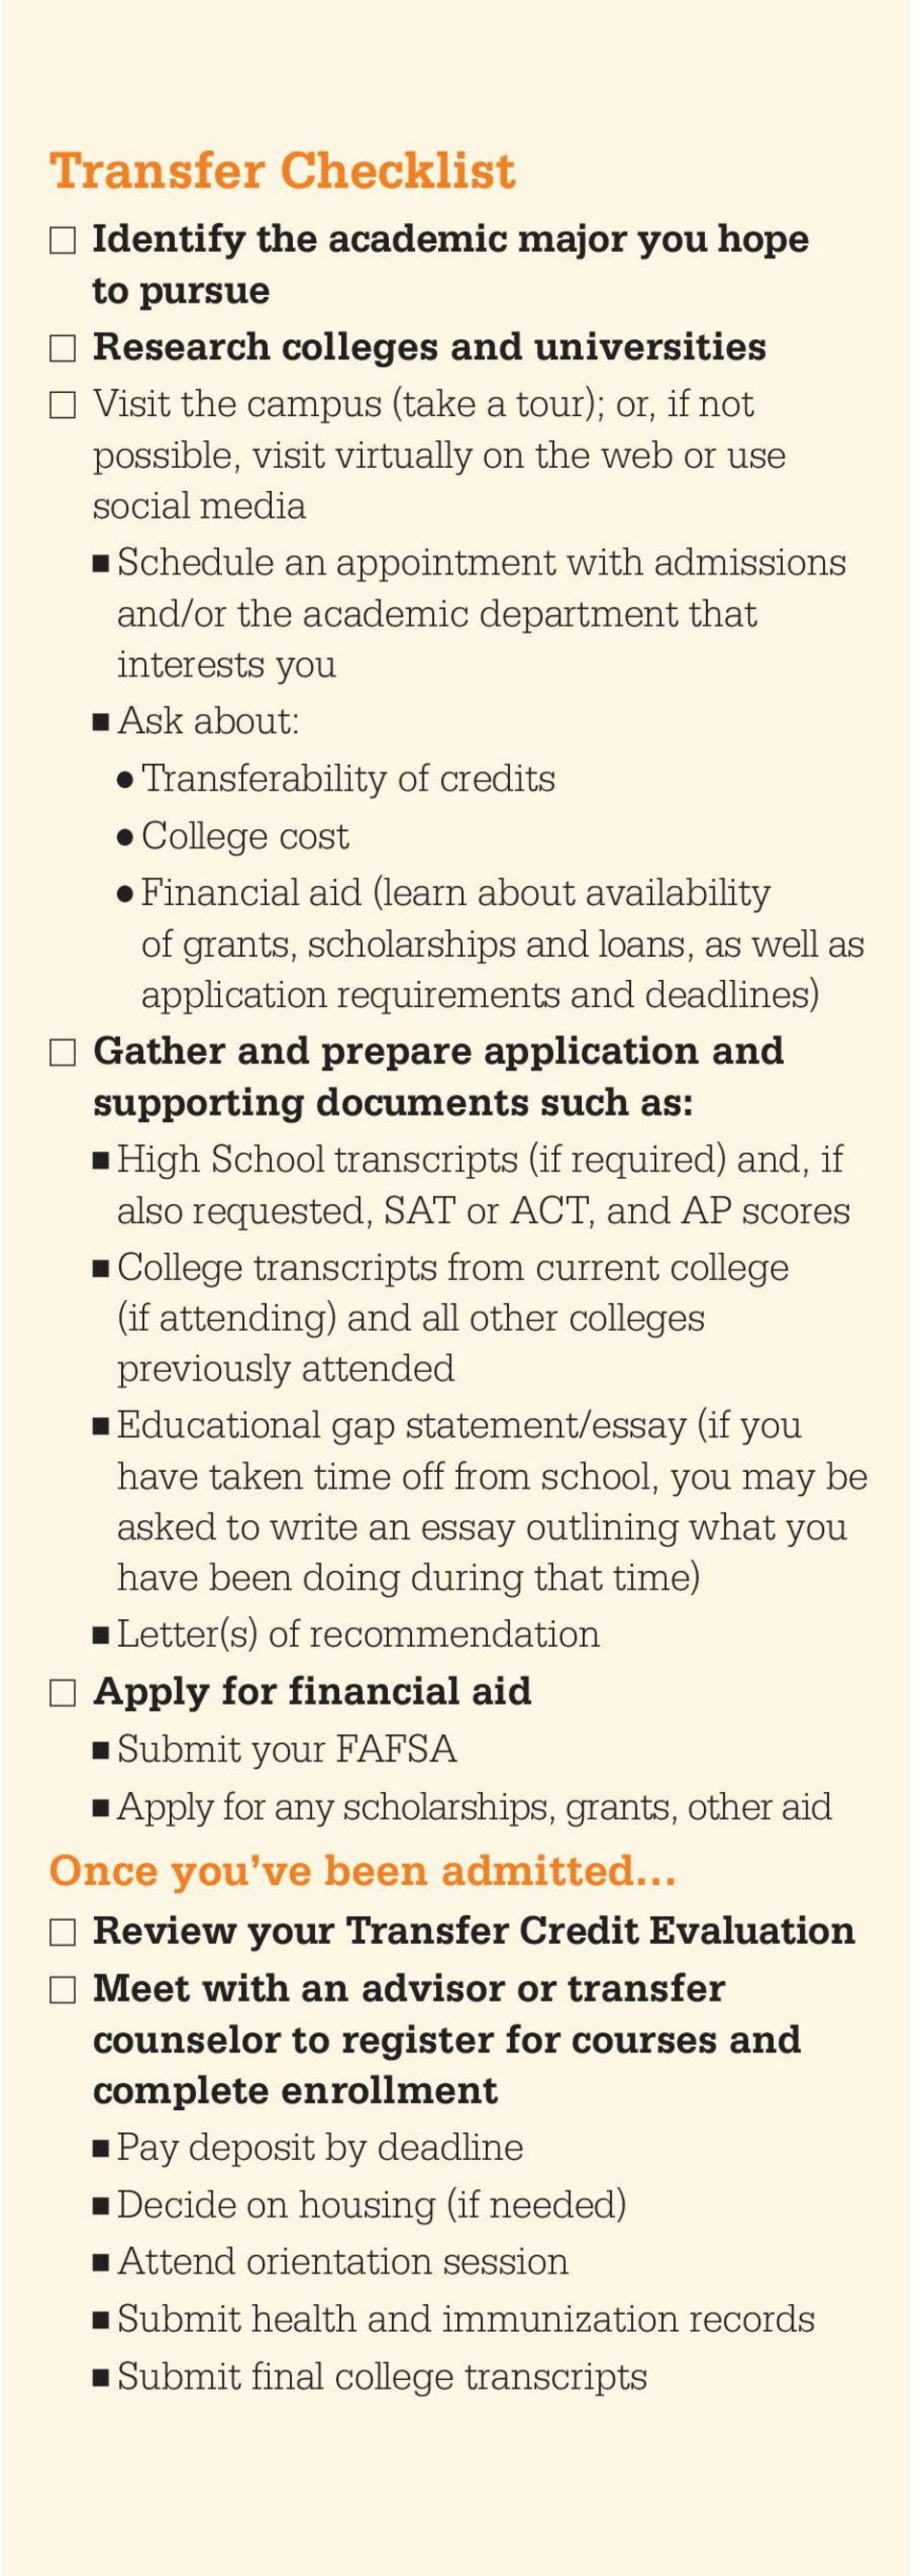 scholarships and loans, as well as application requirements and deadlines) Gather and prepare application and supporting documents such as: High School transcripts (if required) and, if also